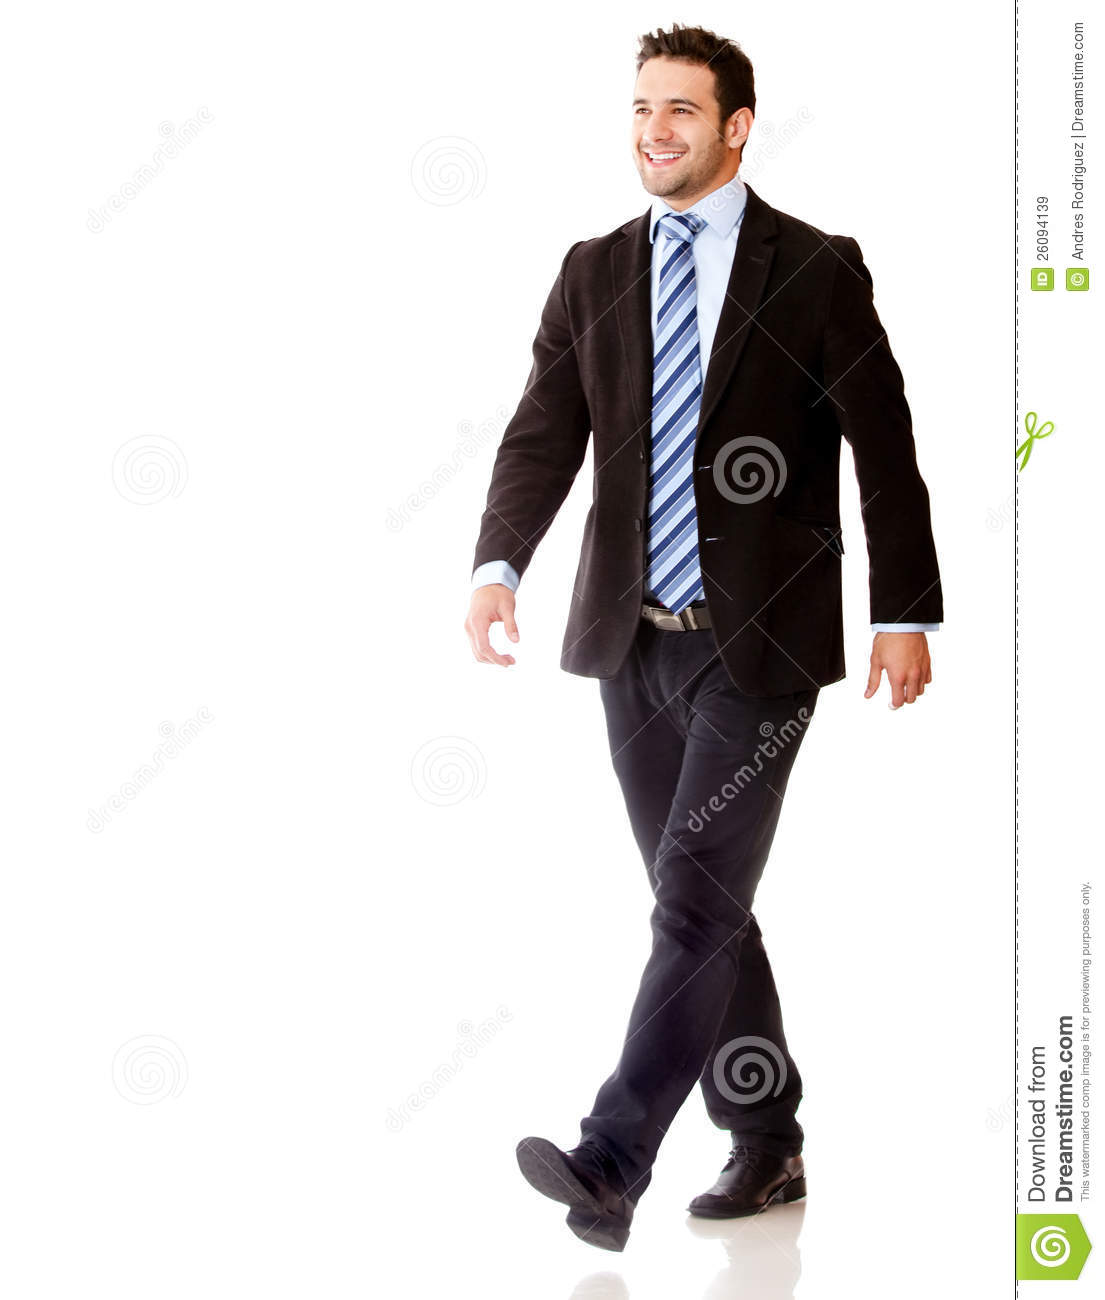 business-man-walking-26094139.jpg